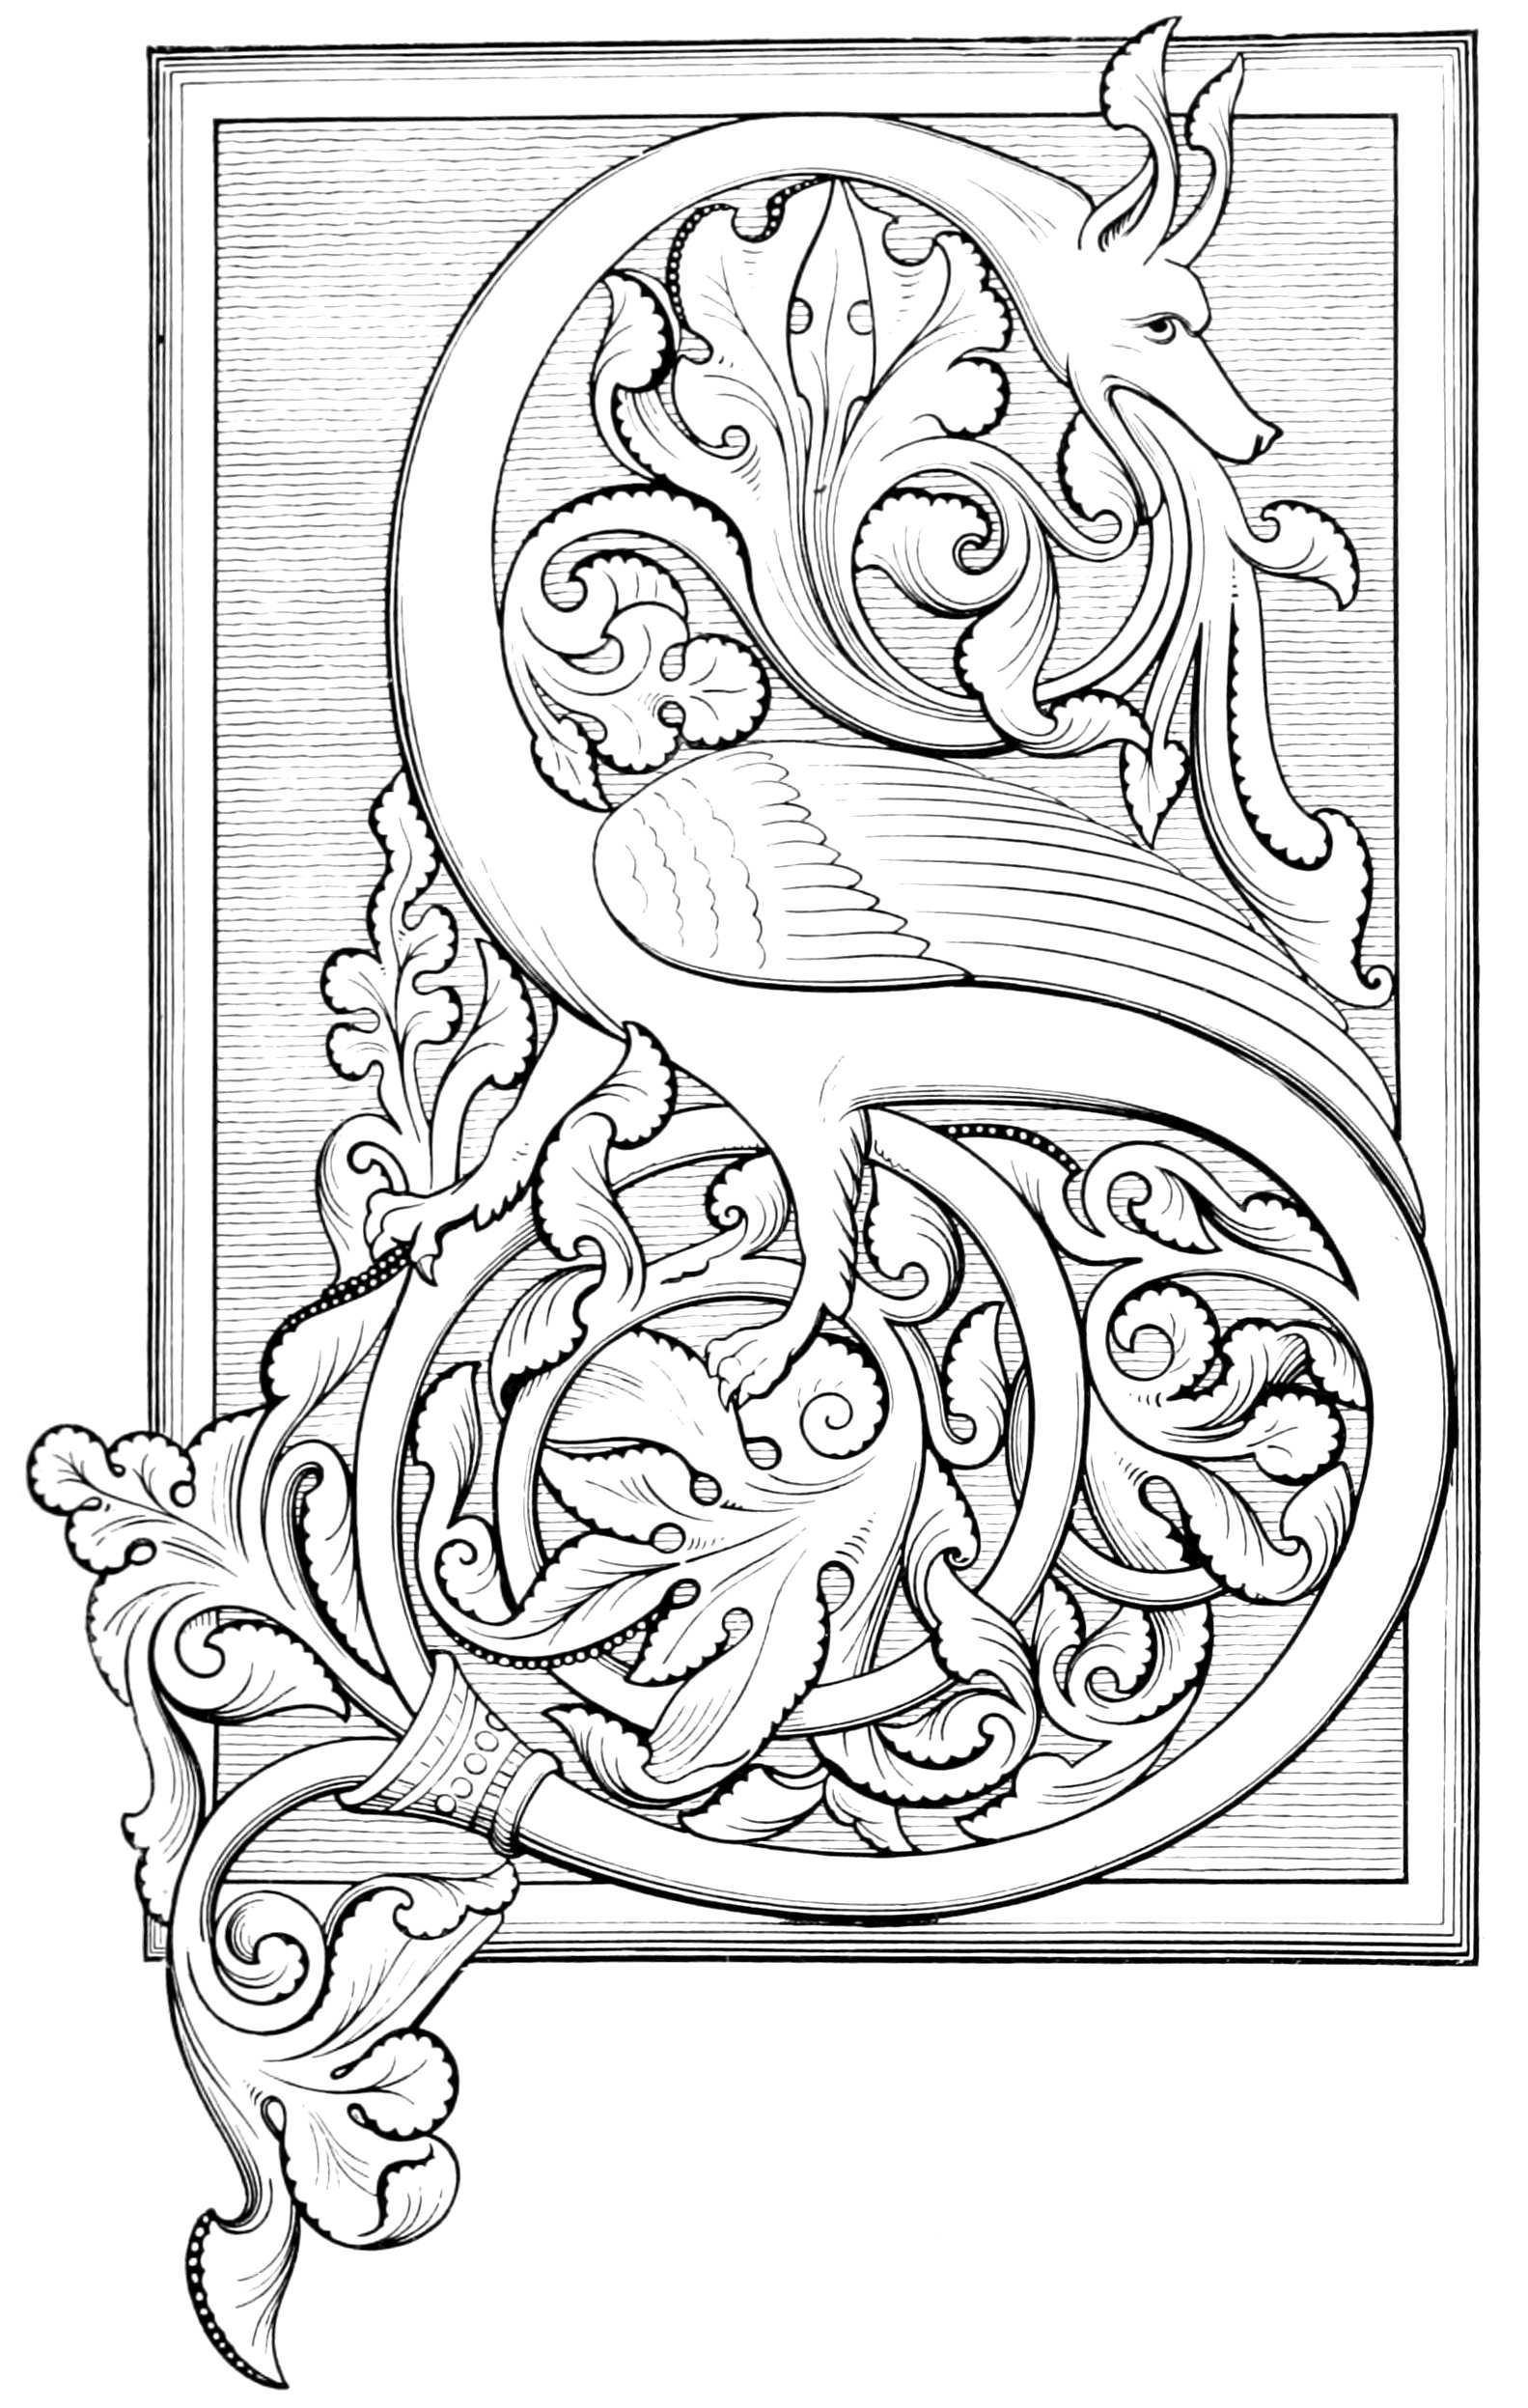 book of kells colouring pages free page of free outline celtic knots examples from the book colouring free kells book pages of